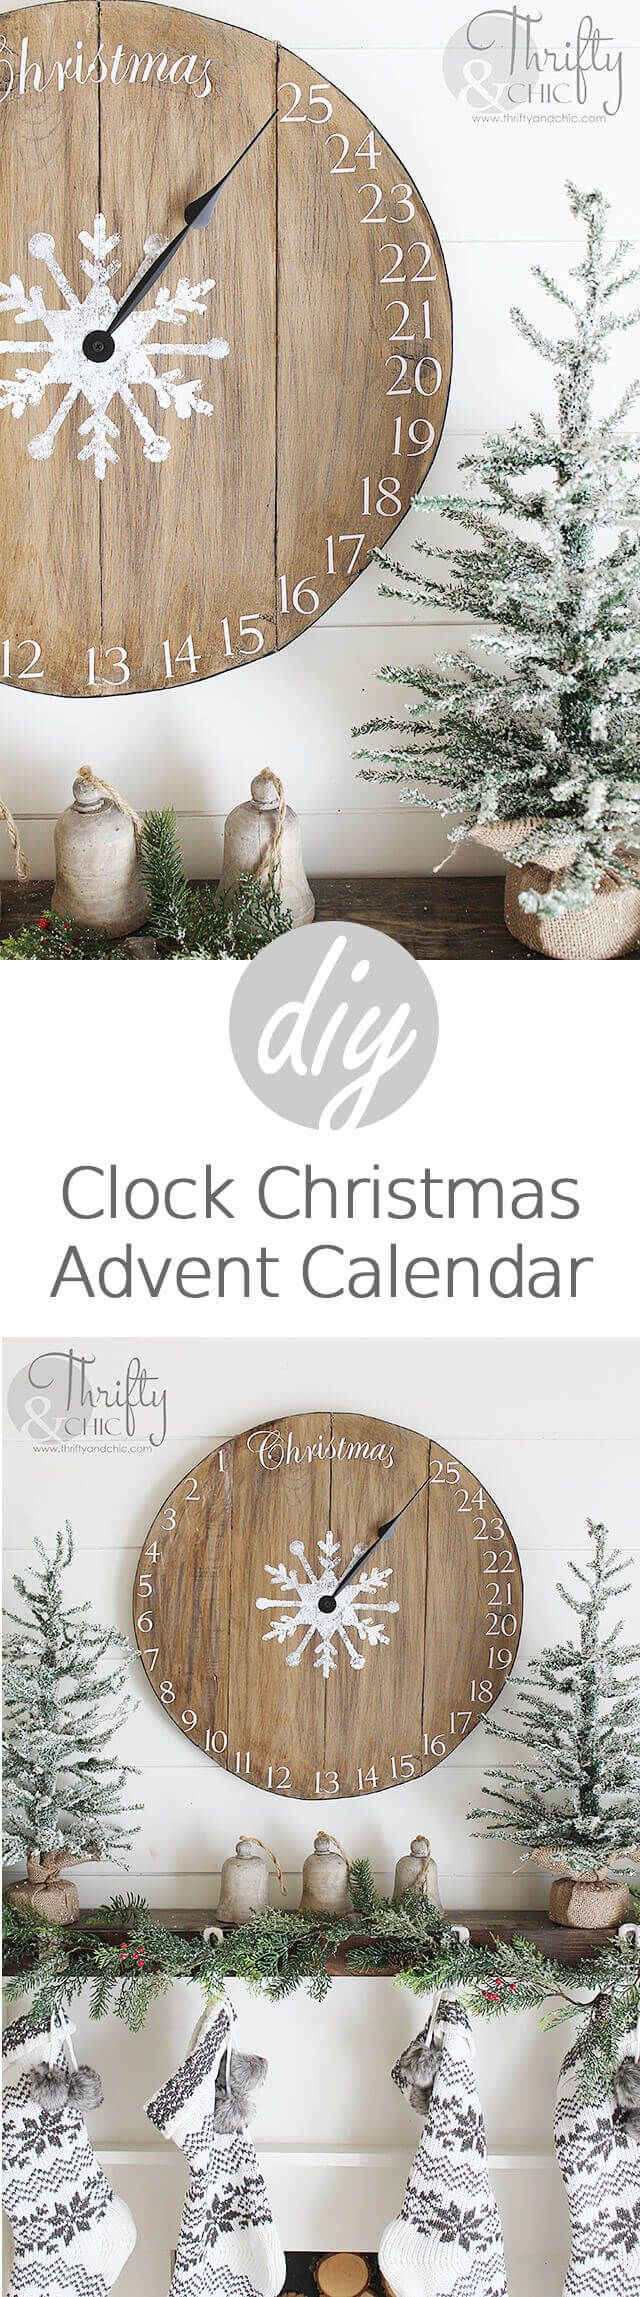 DIY Wooden Christmas Clock Advent Calendar - great alternative to the box or felt calendar!!